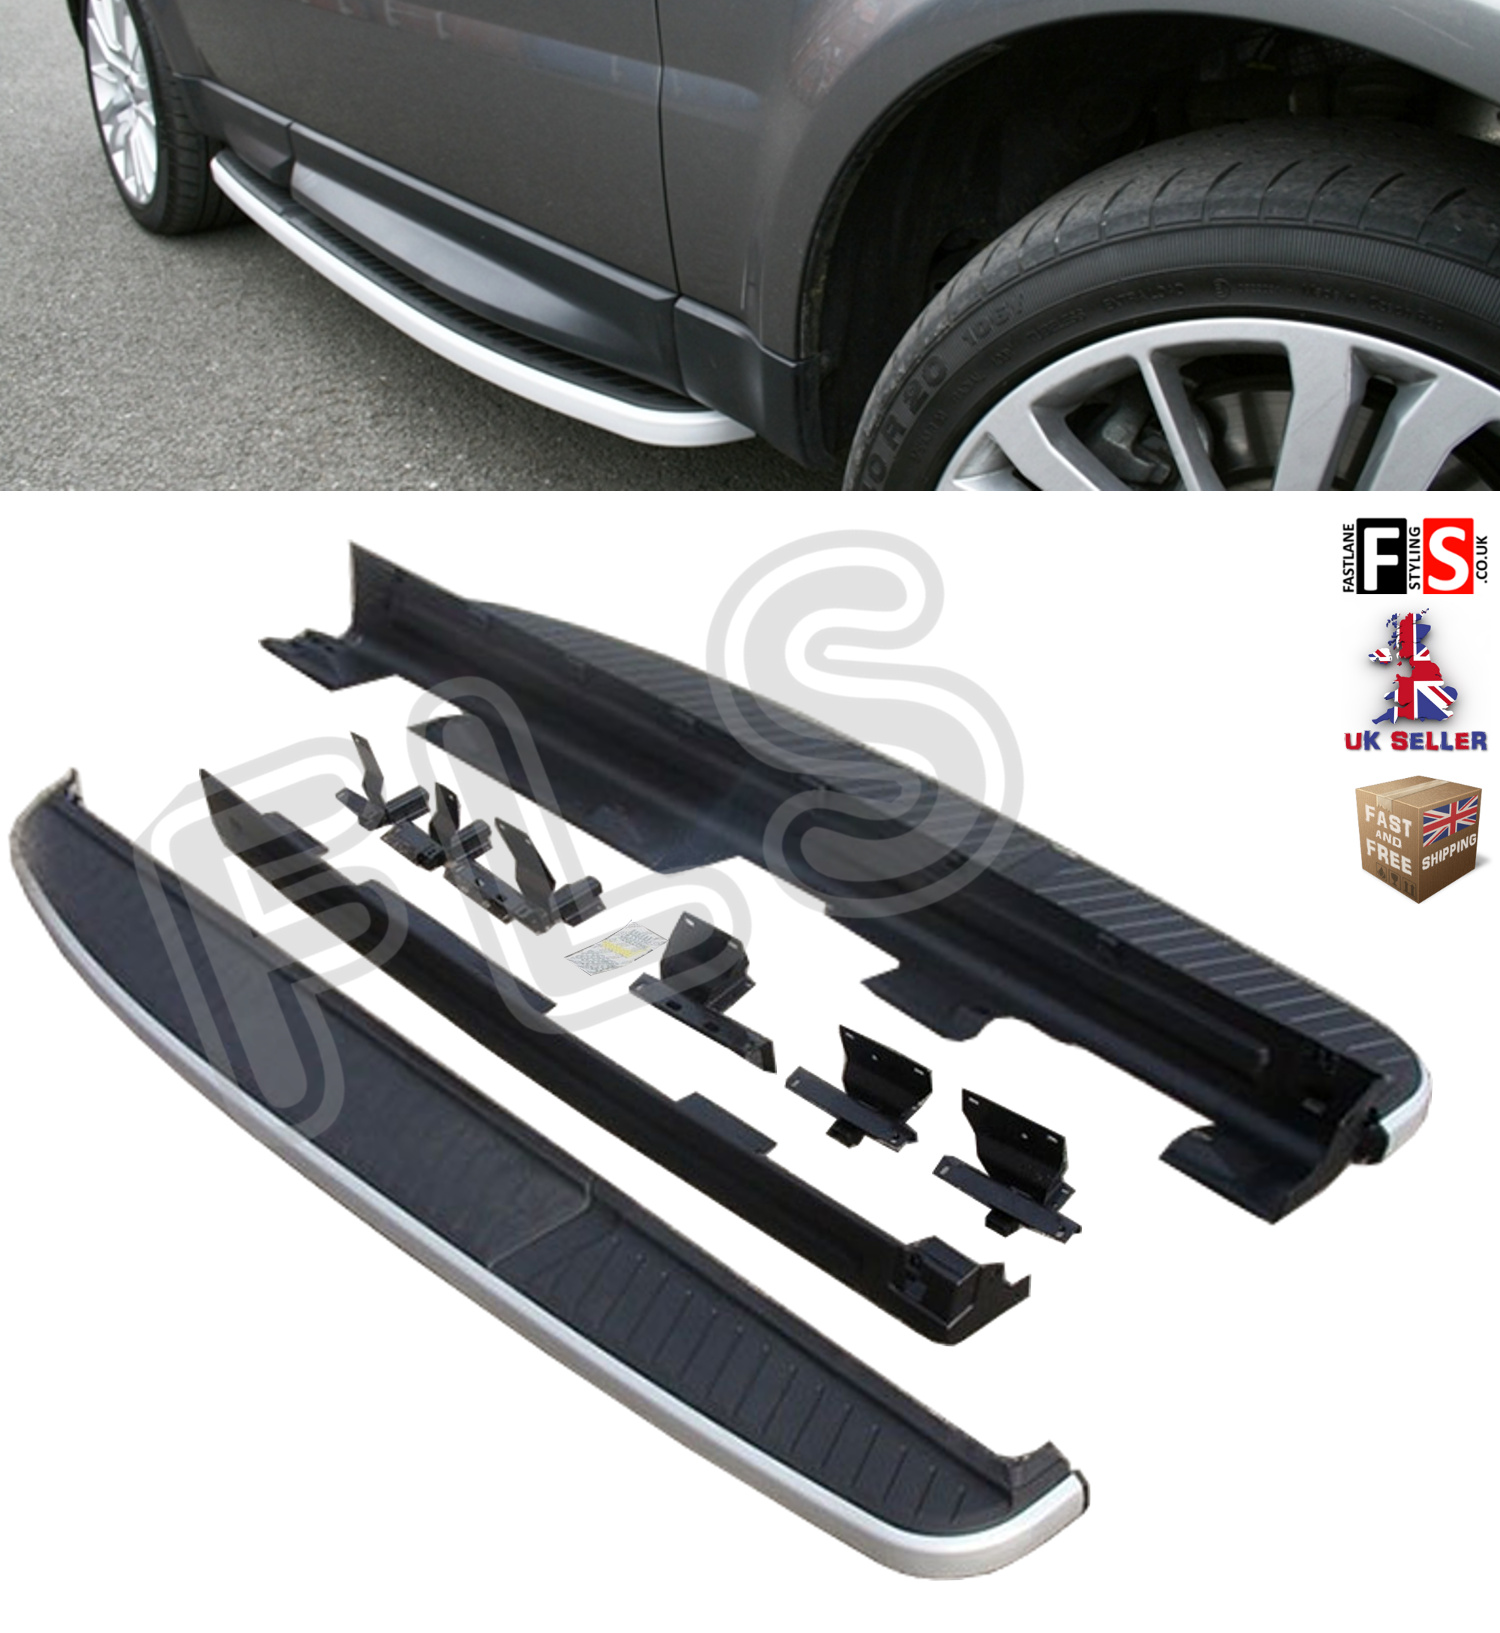 DEFENDER 90 SIDE STEPS RUNNING BOARDS OEM FIT NEW BLACK EDITION